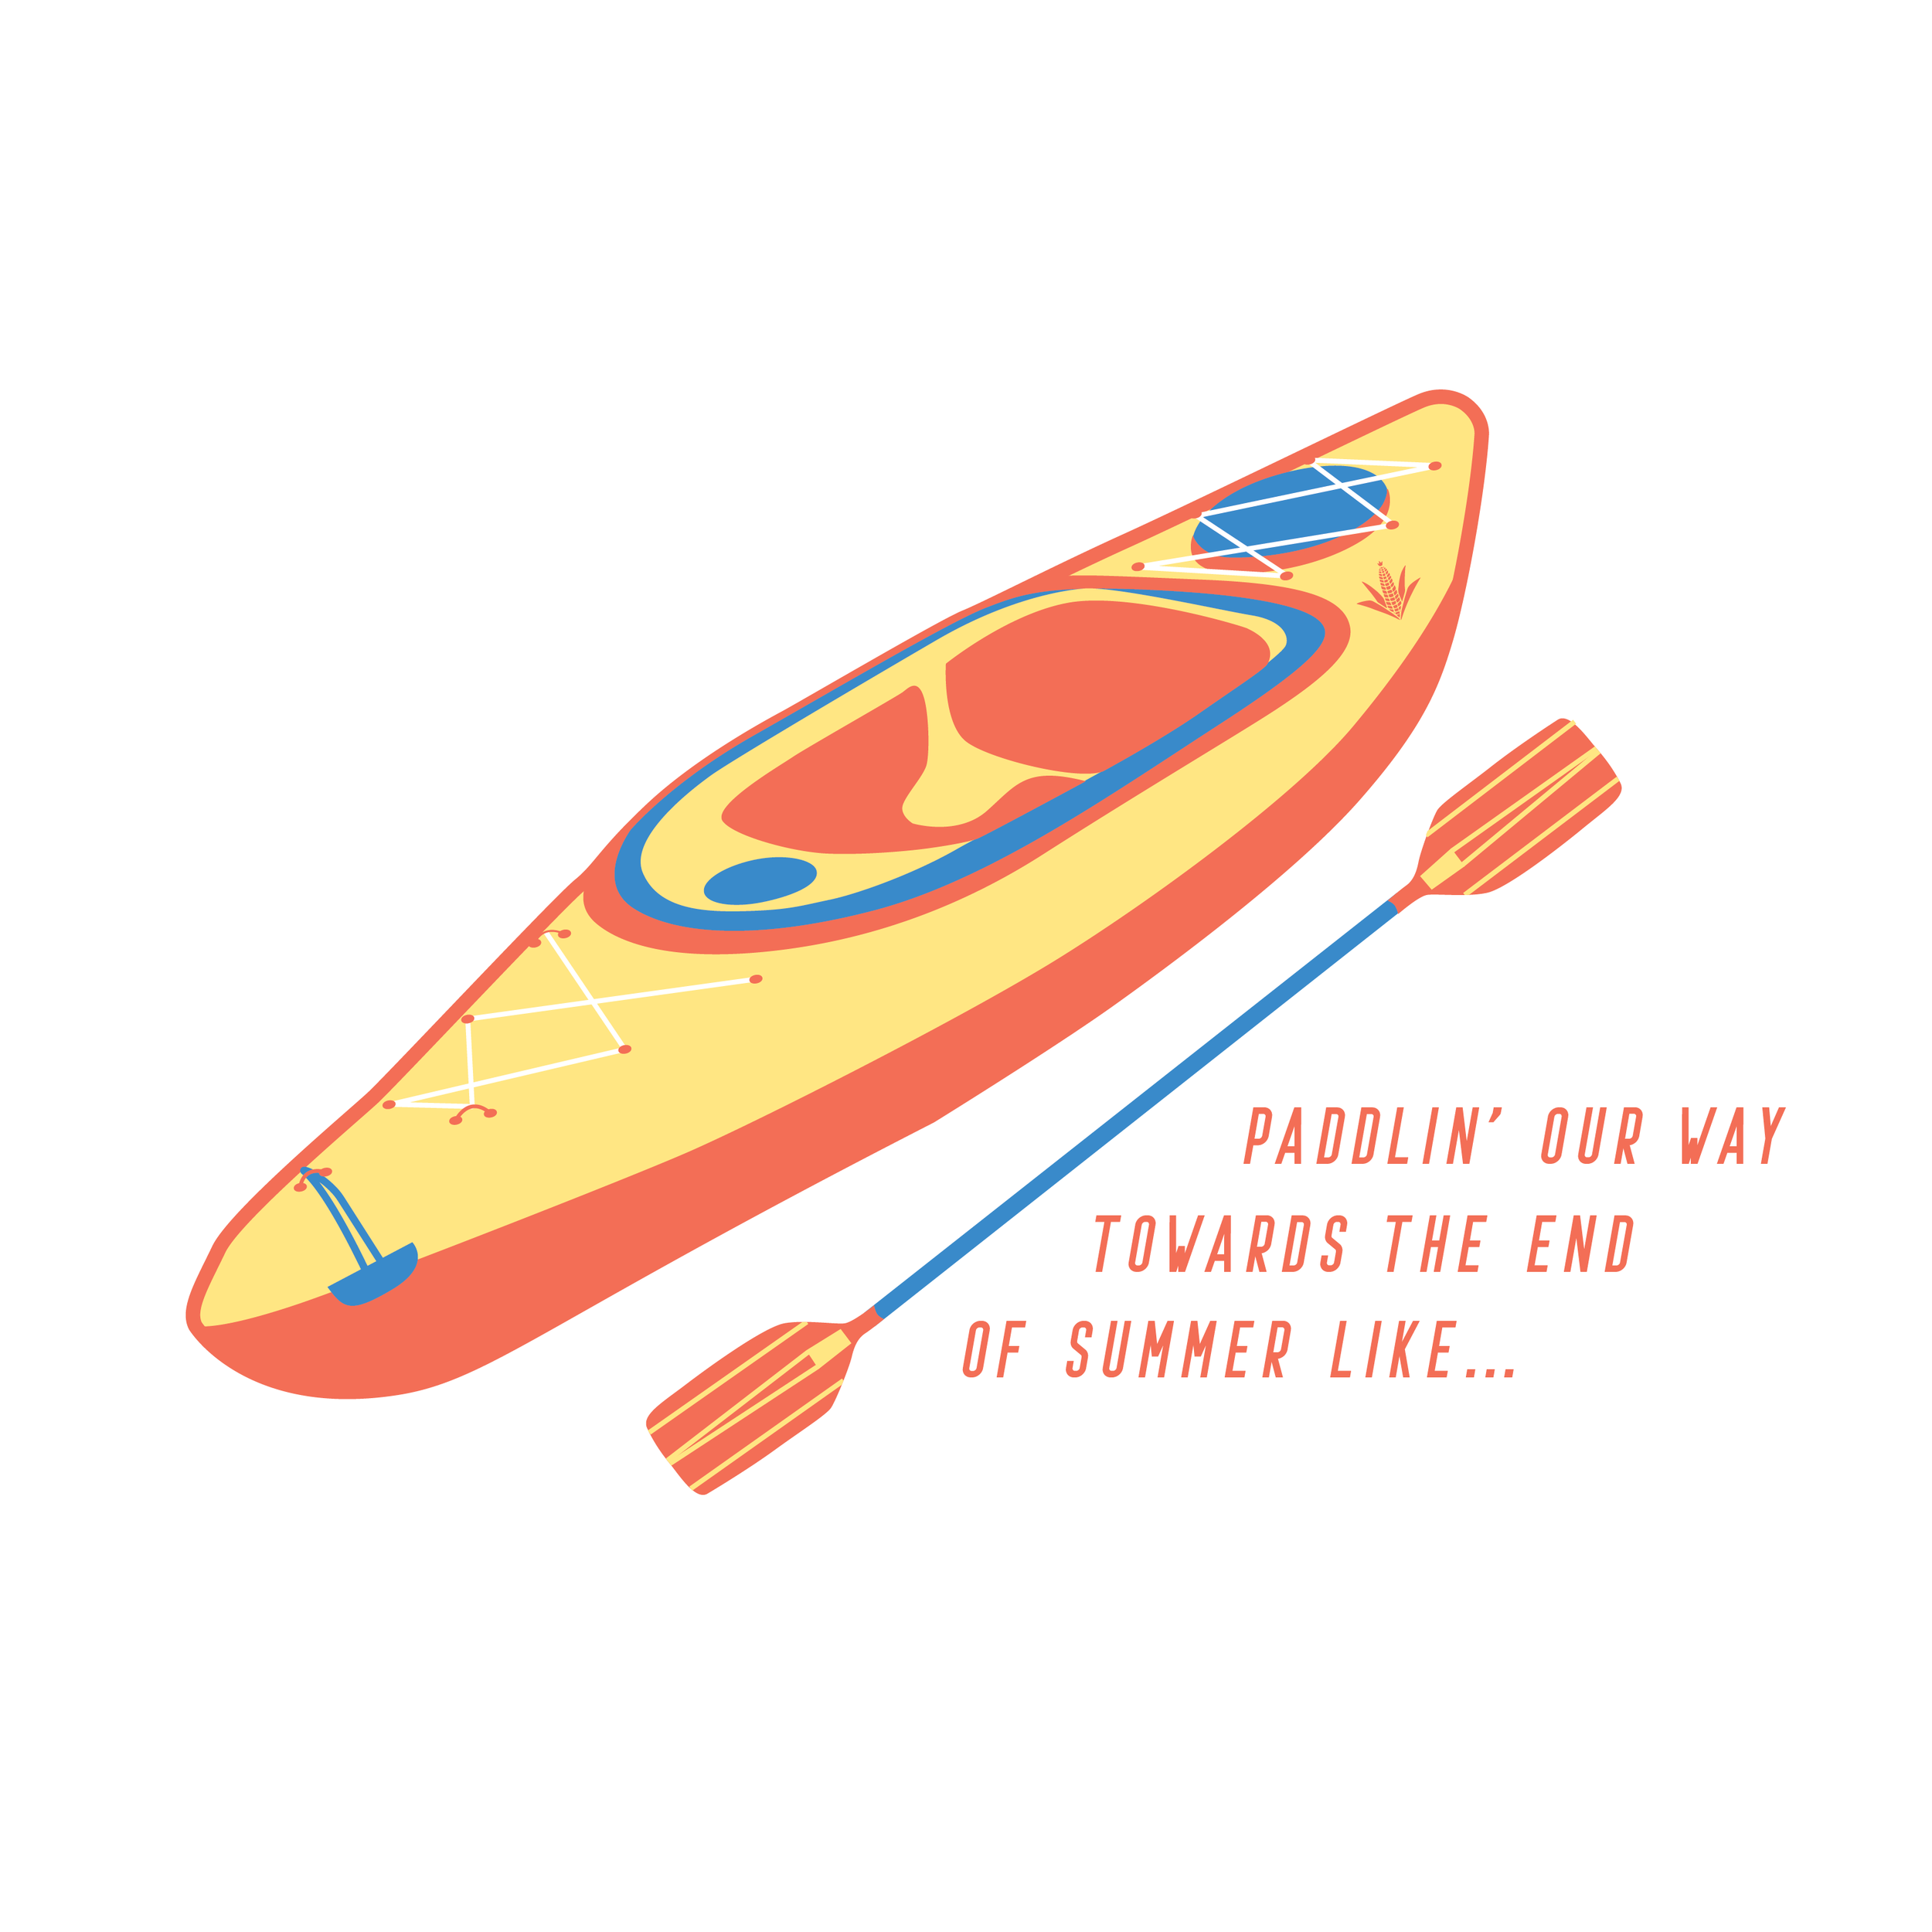 Summer Campaign Four Brothers_Kayak_Artboard 2 copy 2 (1).png